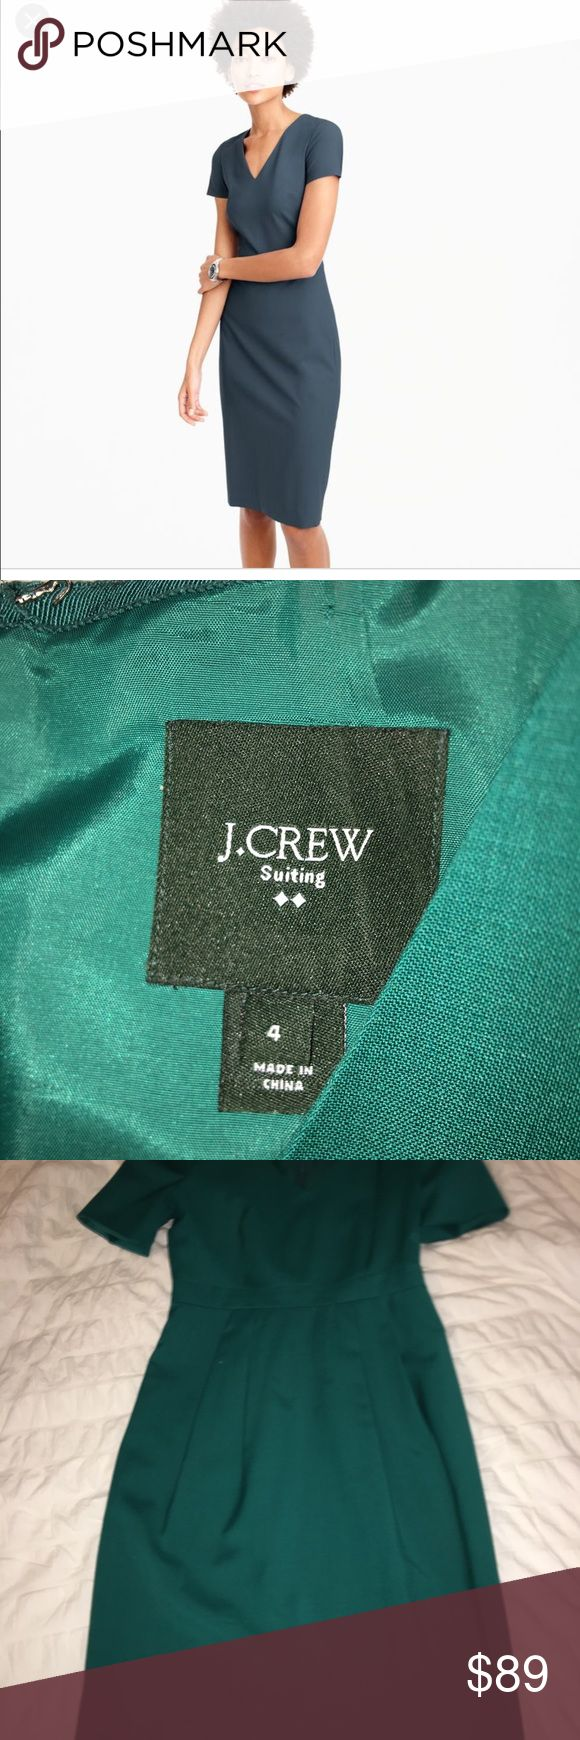 J crew cap sleeve suit dress emerald green Emerald Green - excellent quality! Italian wool v neck dress with decorative cap sleeve detail. Feminine while sophisticated! No longer available on-line. Timeless look! Snag this beauty while it is available!! J. Crew Dresses